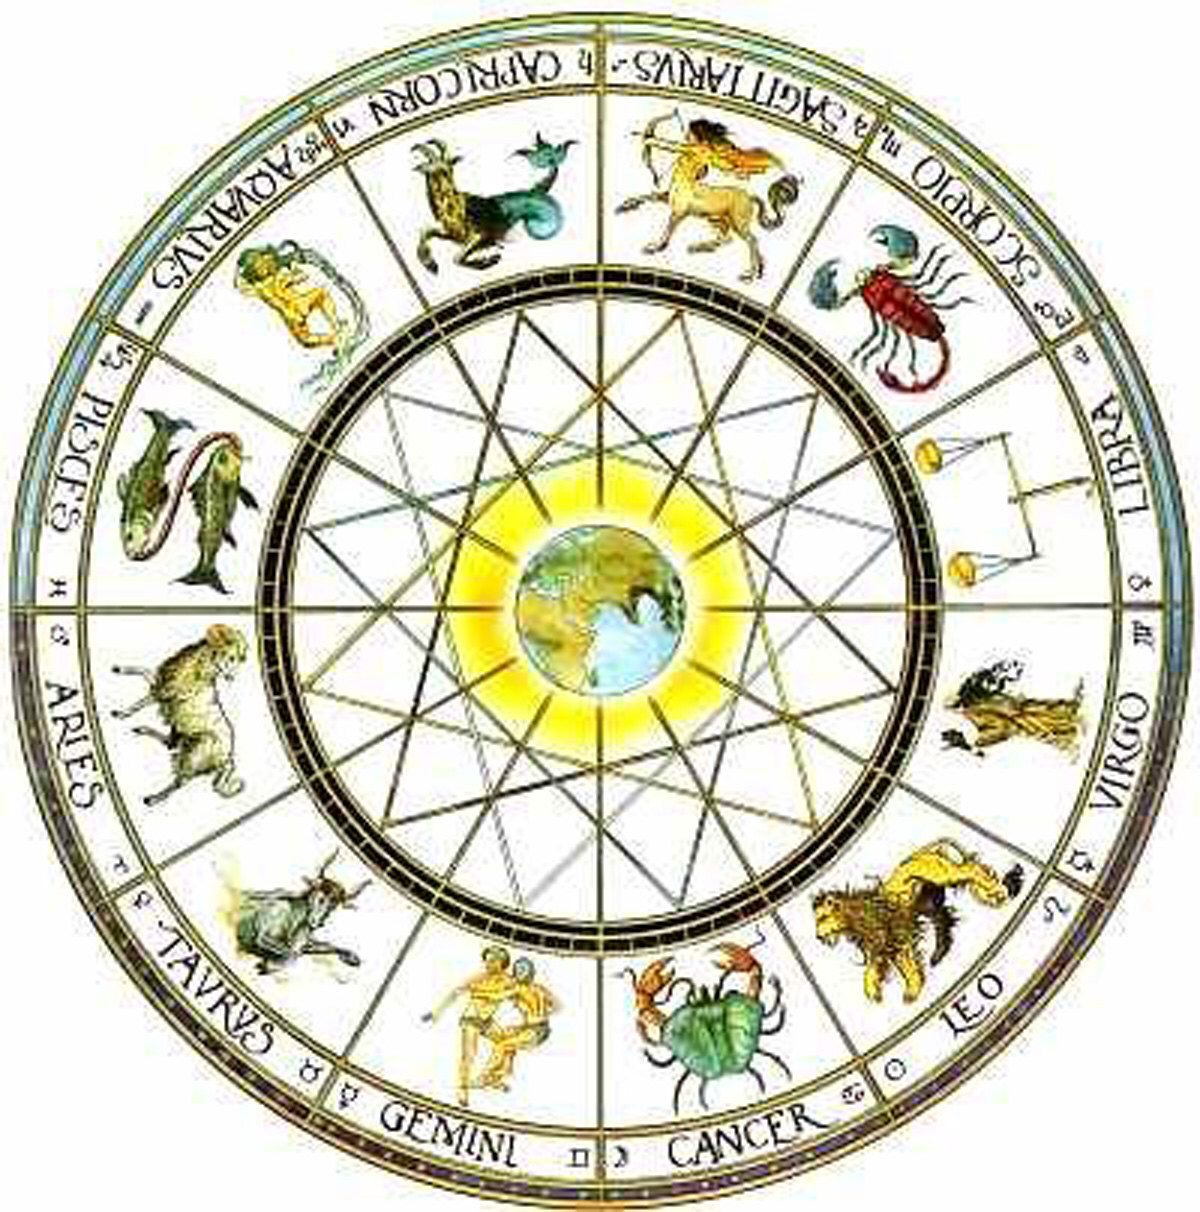 Full Astrological Profile By Tantramartarotscopes On Etsy Https